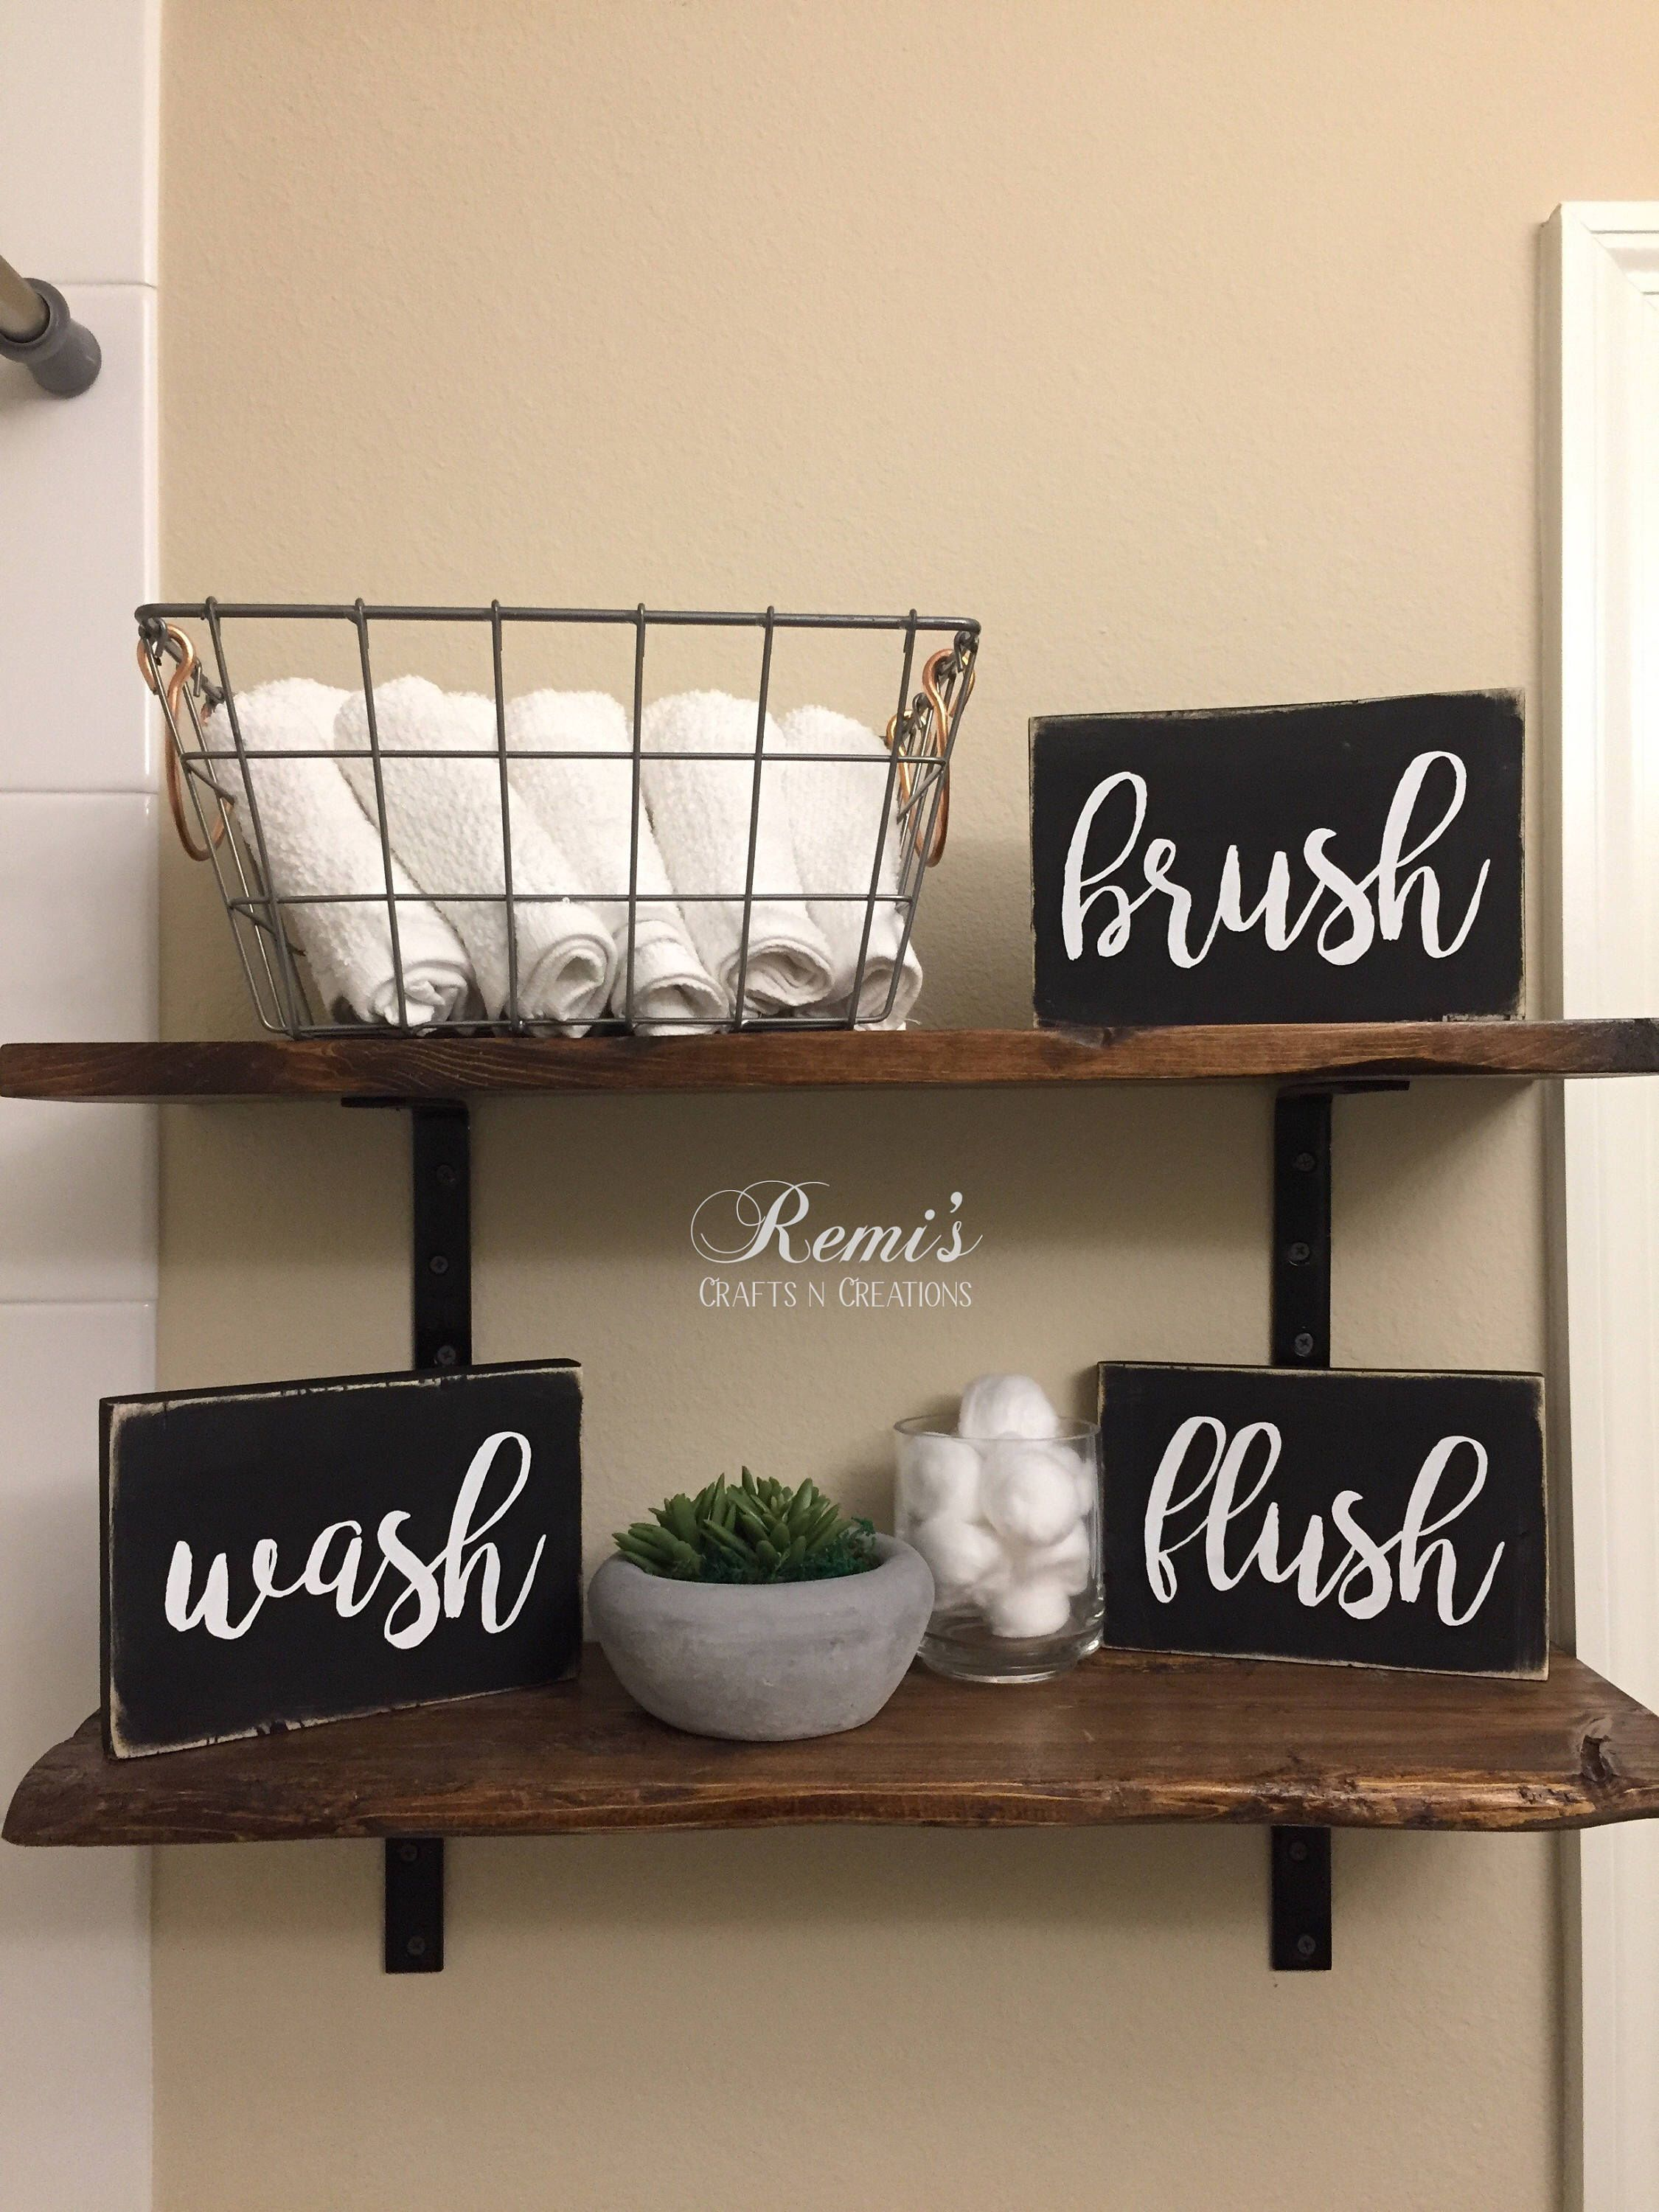 Set of 3 bathroom decor farmhouse bathroom shelf decor wood sign